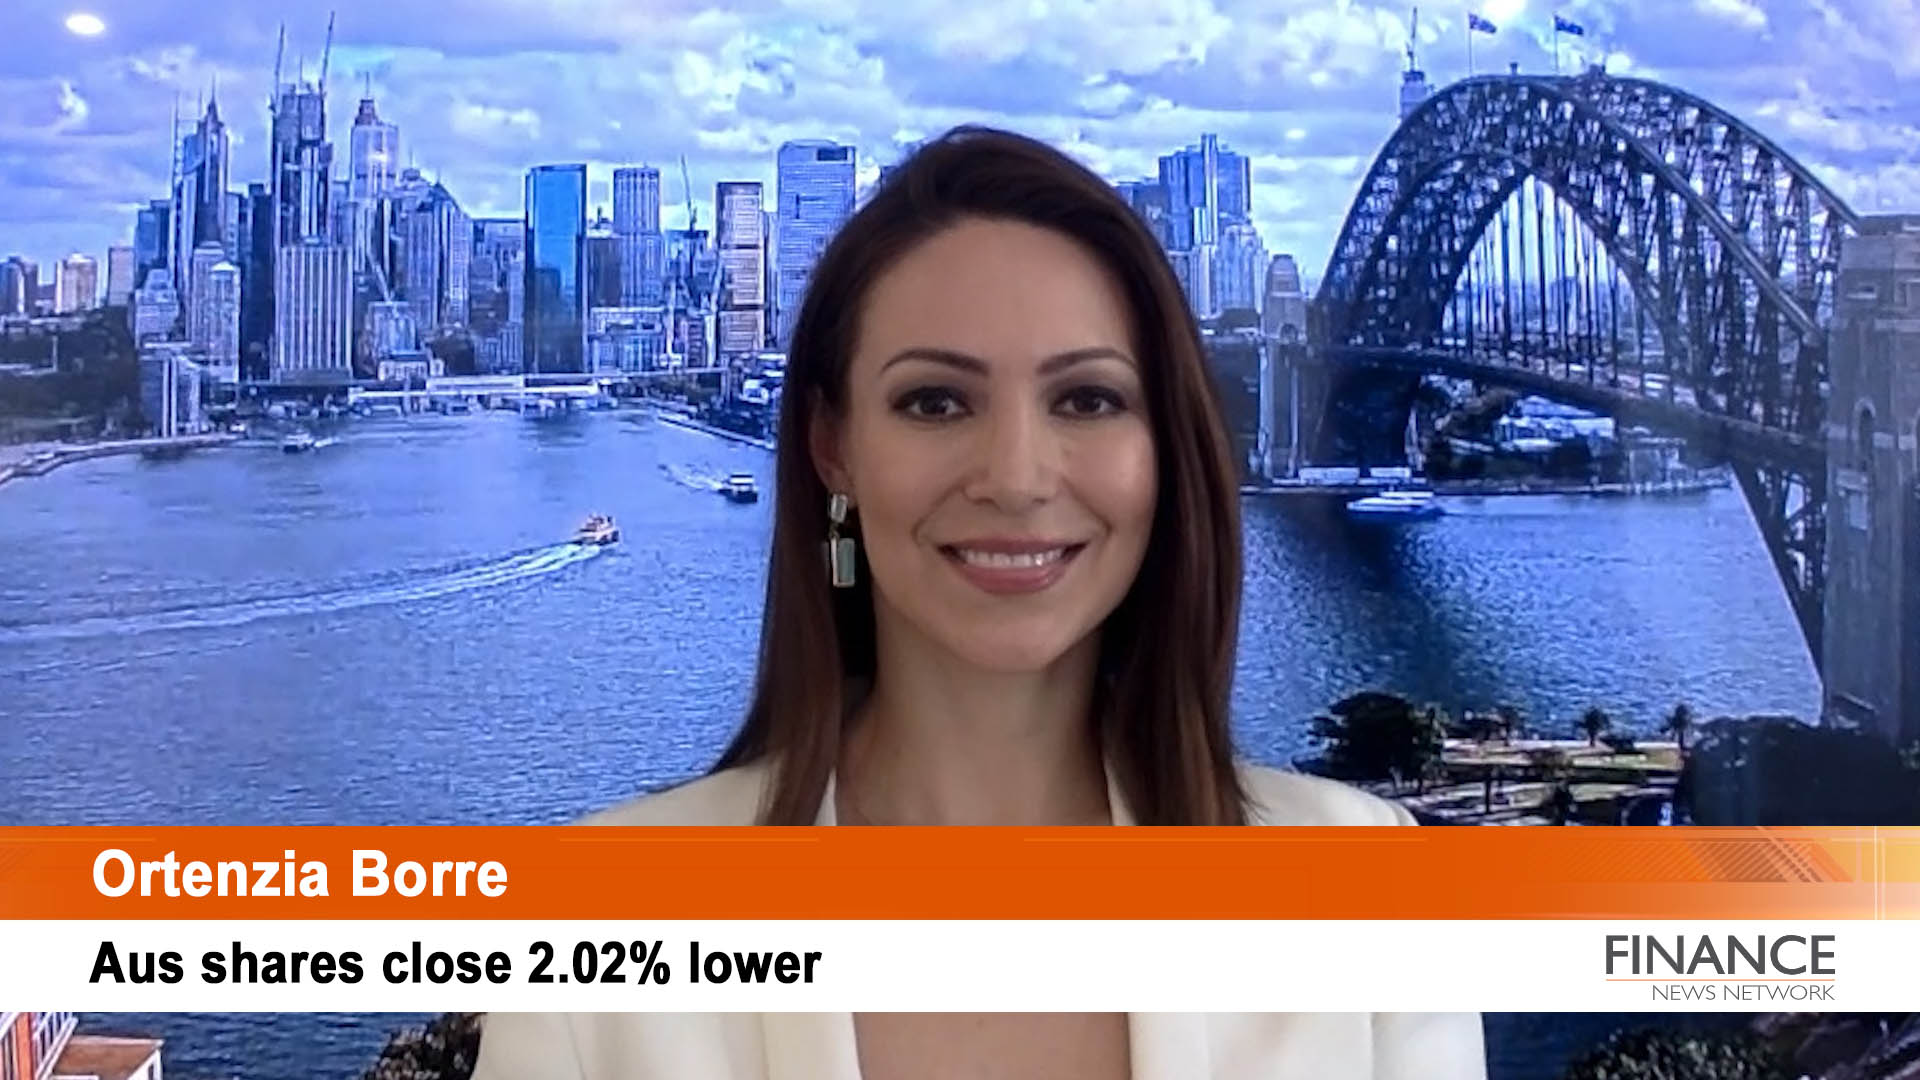 St Barbara (ASX:SBM) continues operations: Aus shares close 2% lower